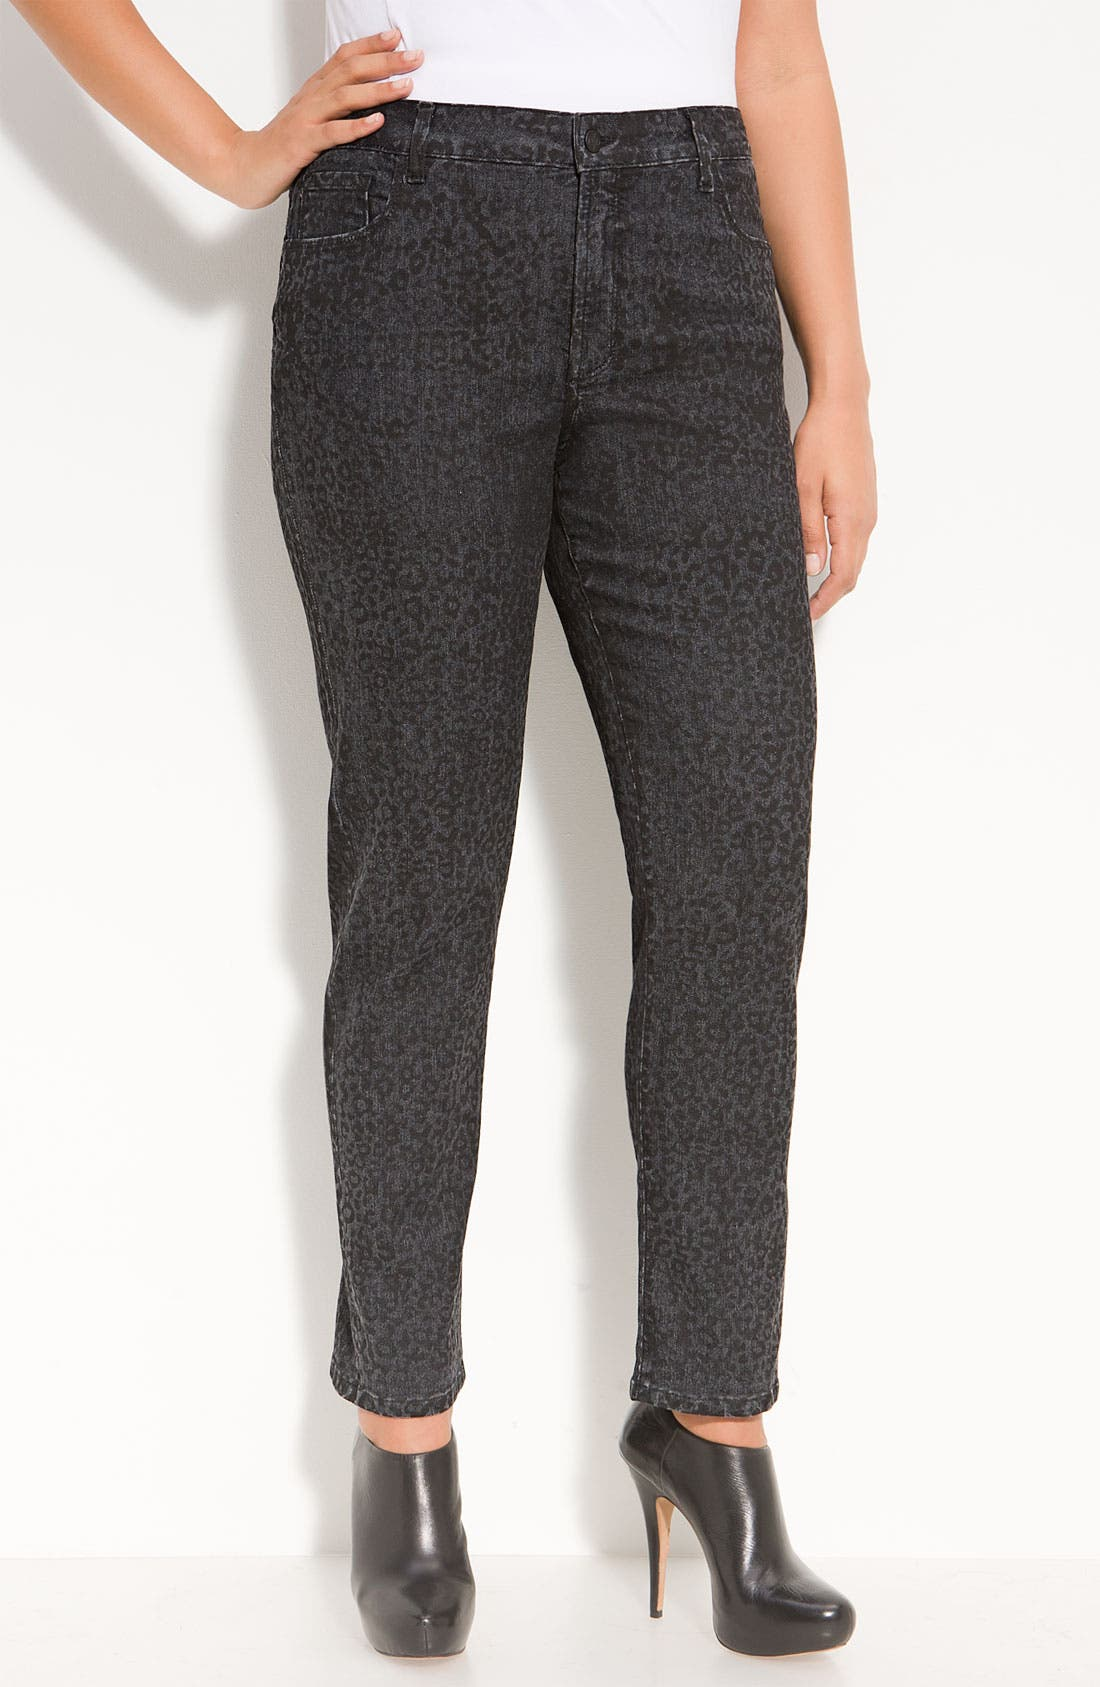 Main Image - Not Your Daughter's Jeans® 'Sheri' Patterned Skinny Stretch Jeans (Plus)